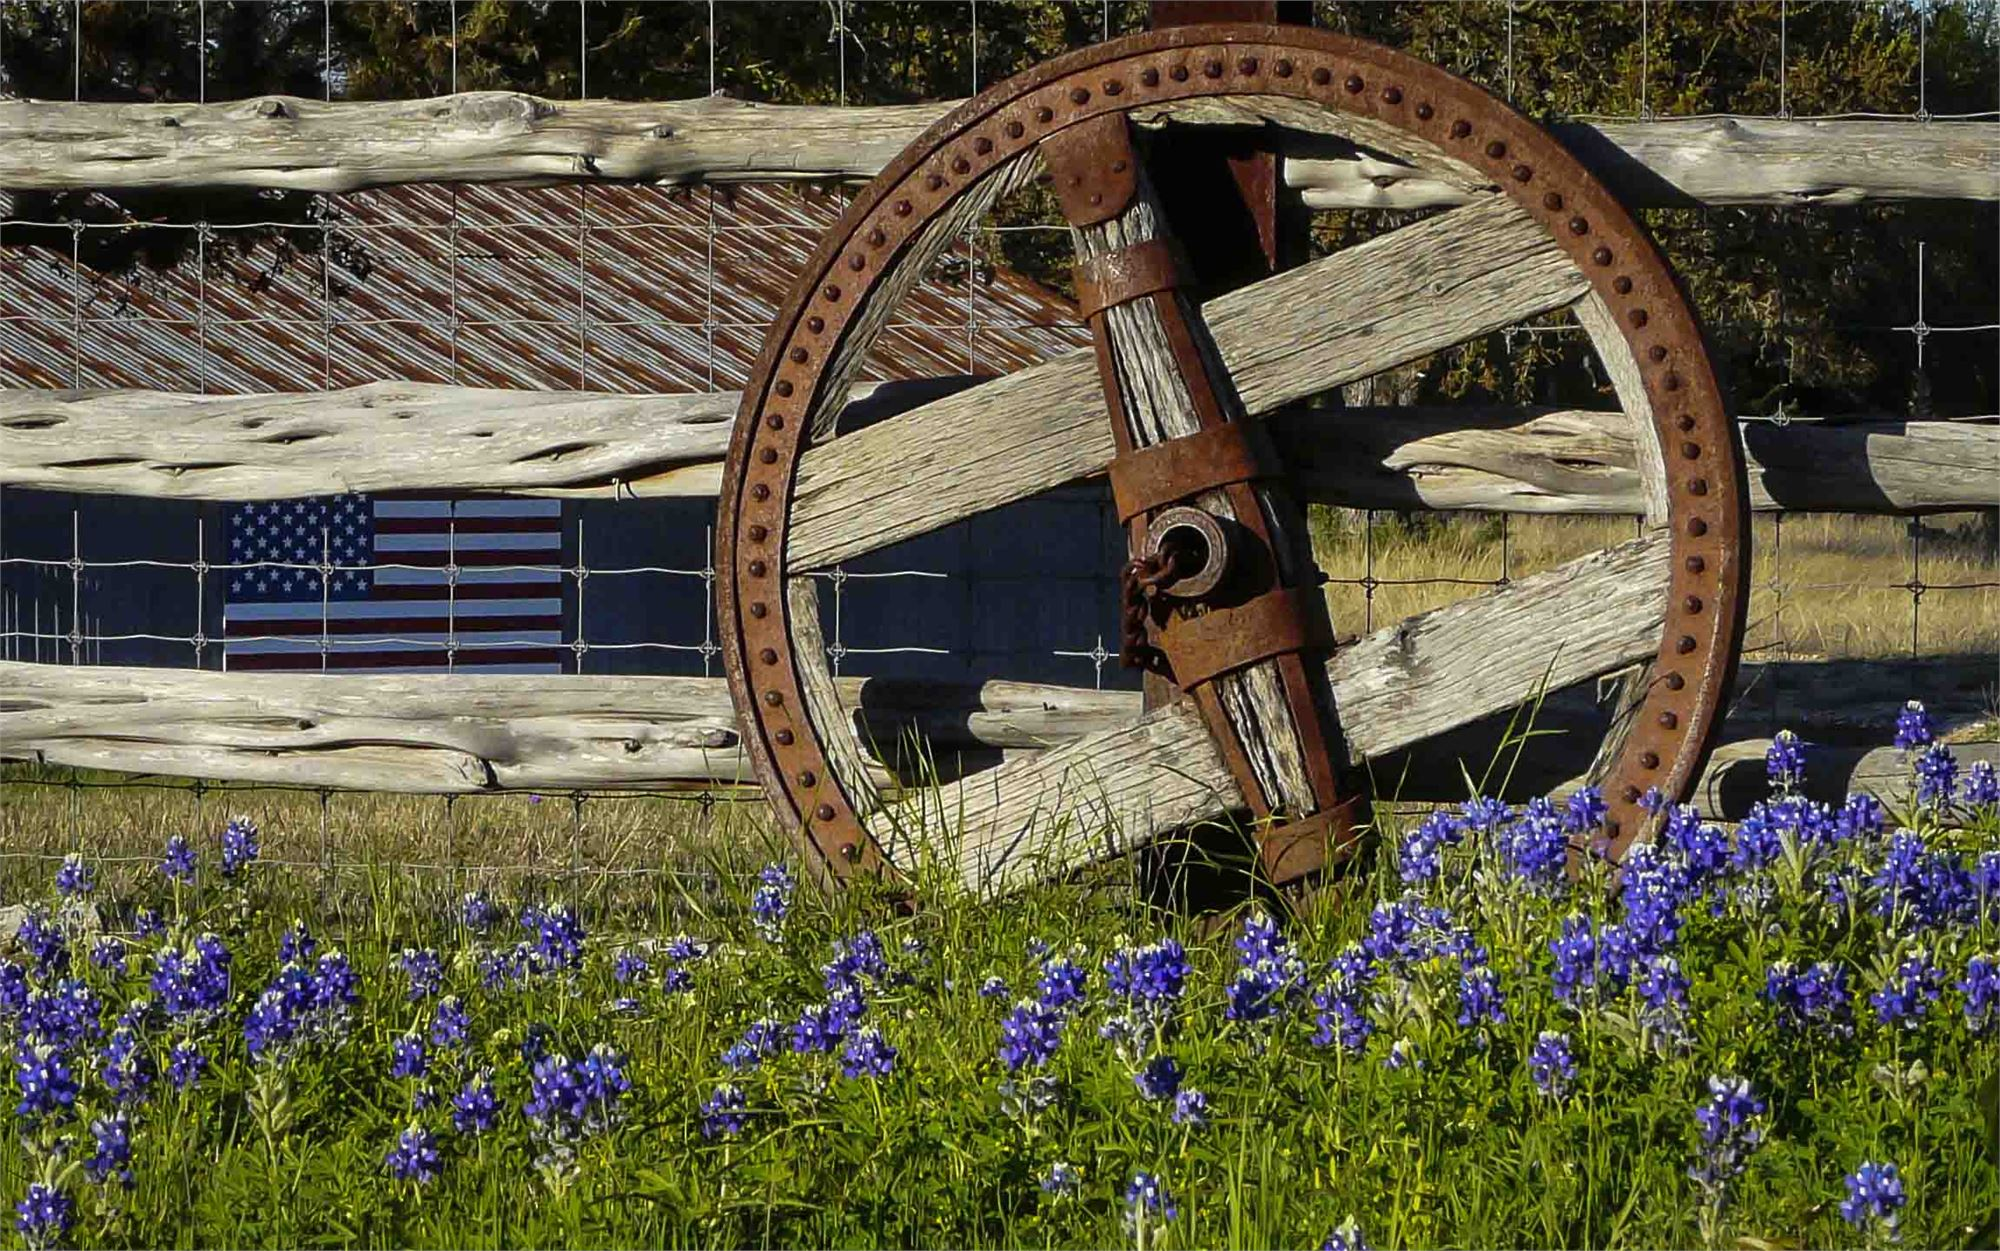 An antique wagon wheel propped against a wood fence in a field of bluebonnets